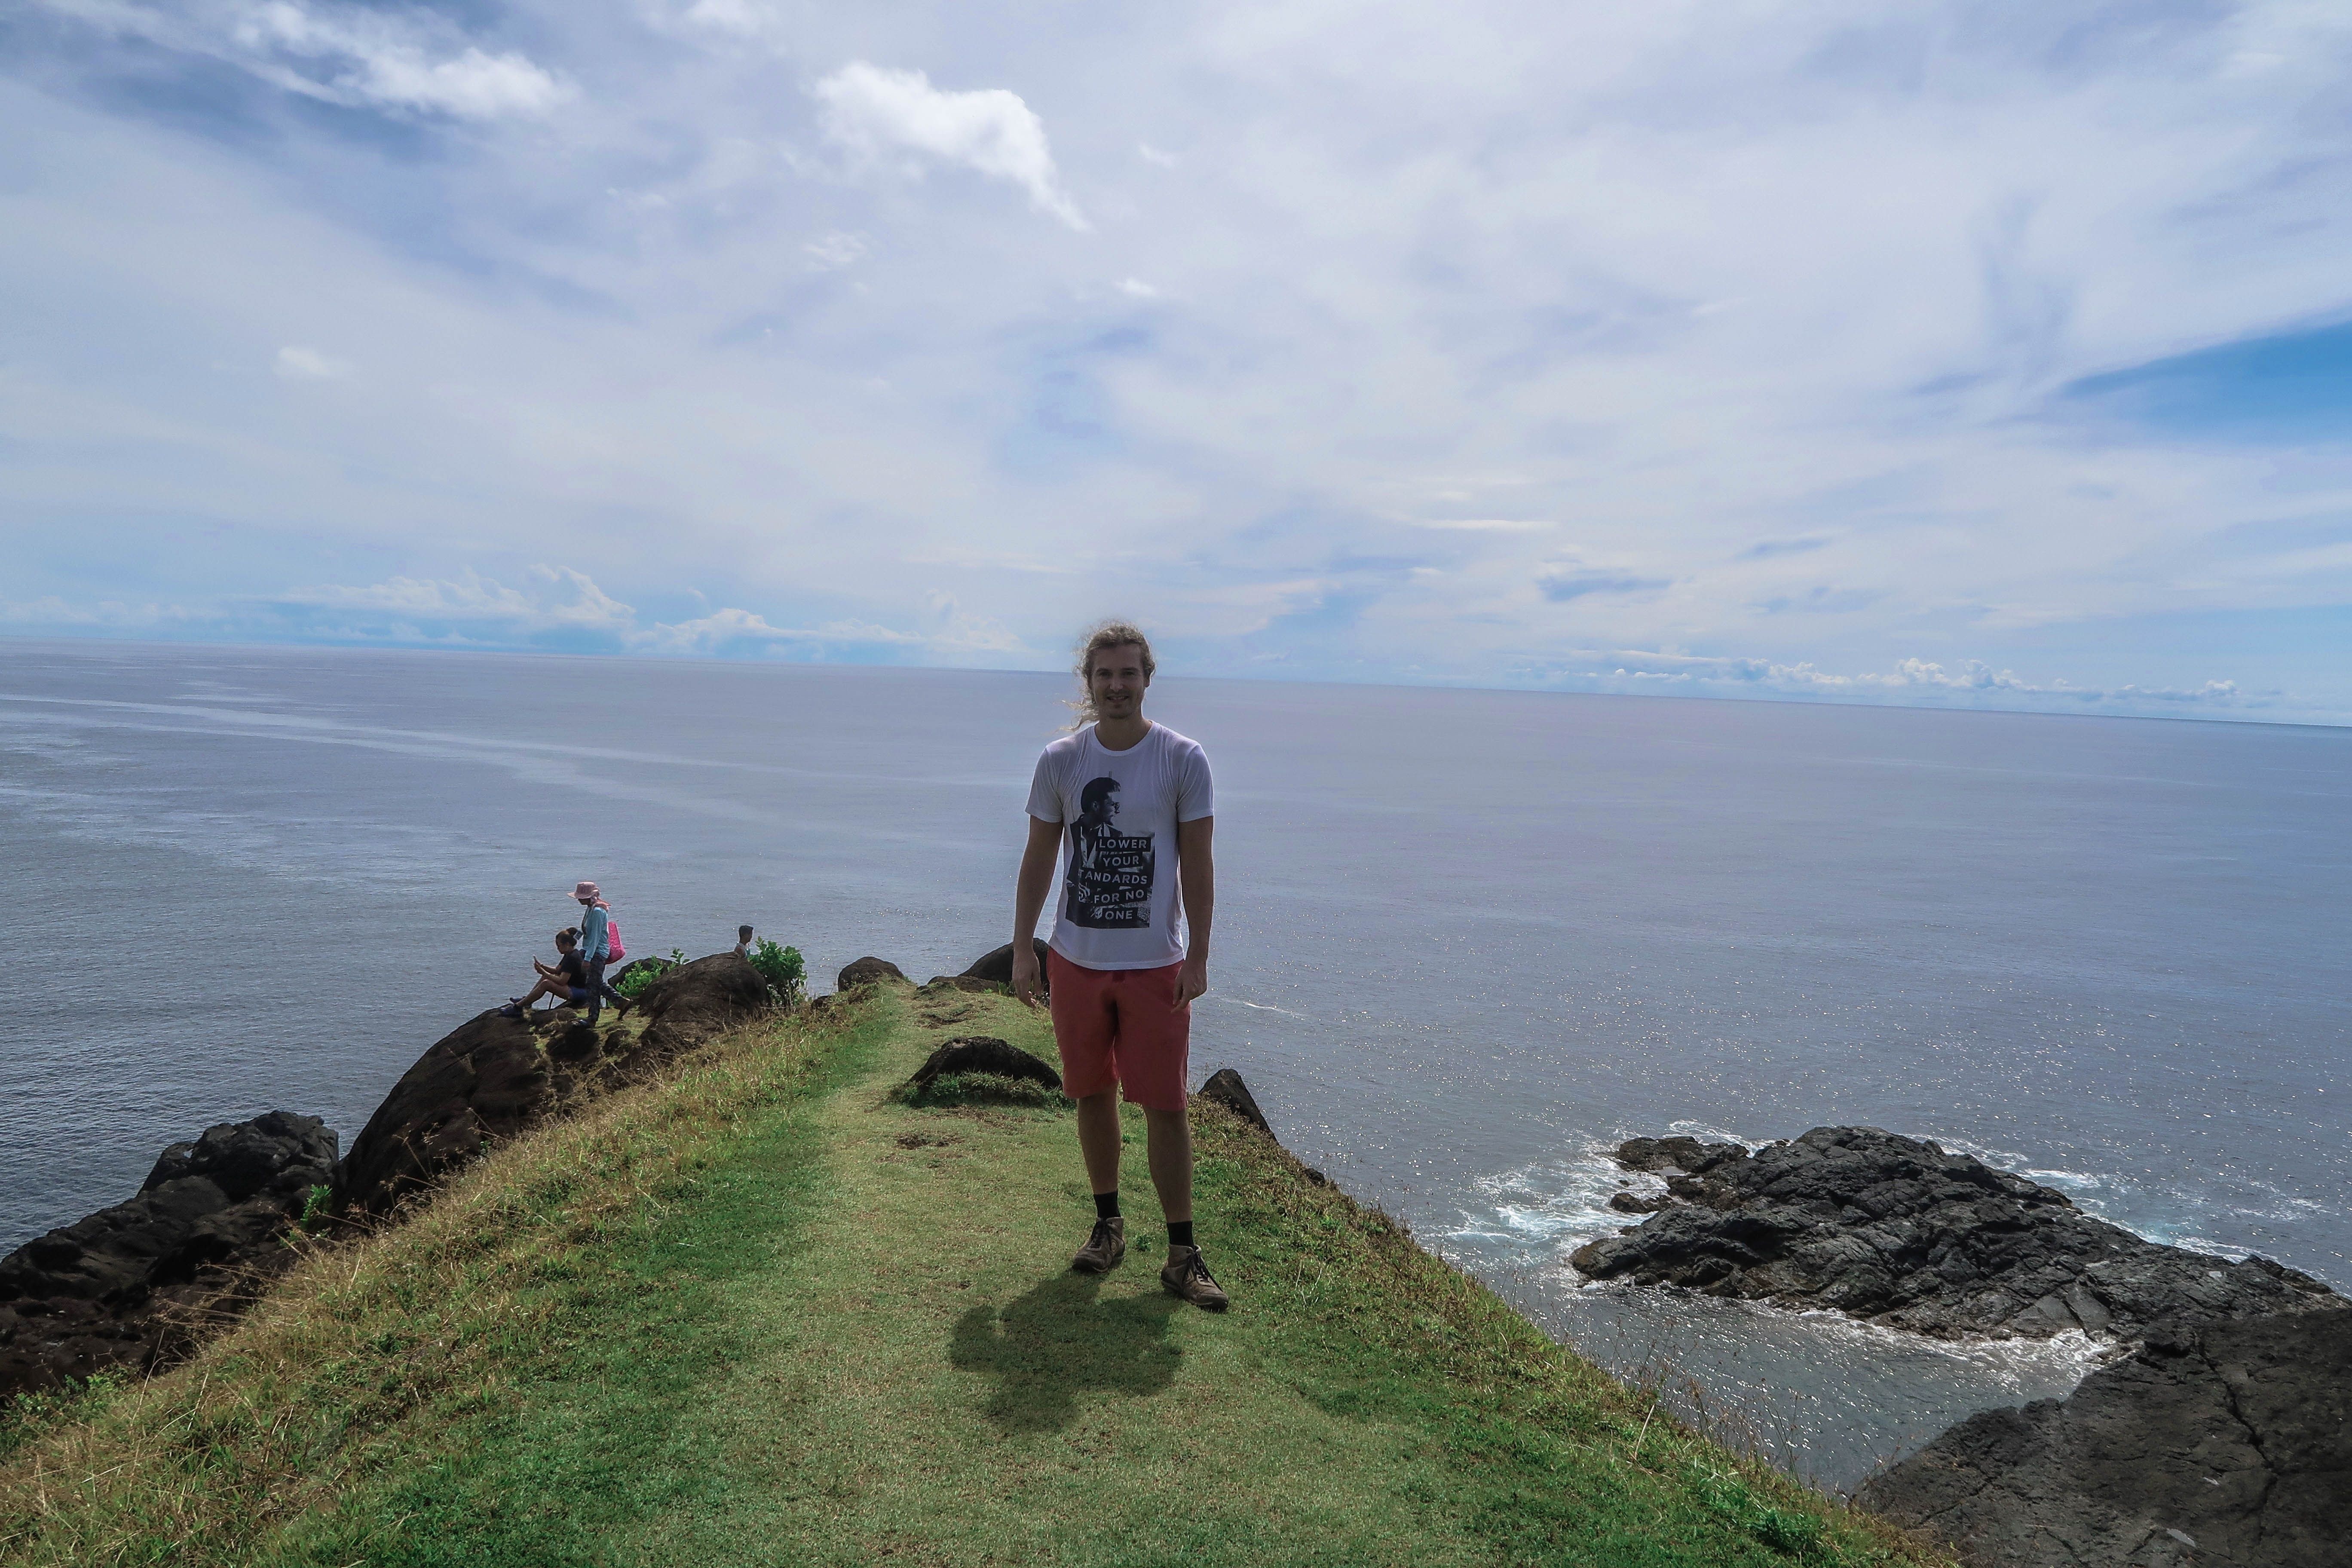 Lenny is standing here at Point Binurong natural landmark in Catanduanes, Philippines.